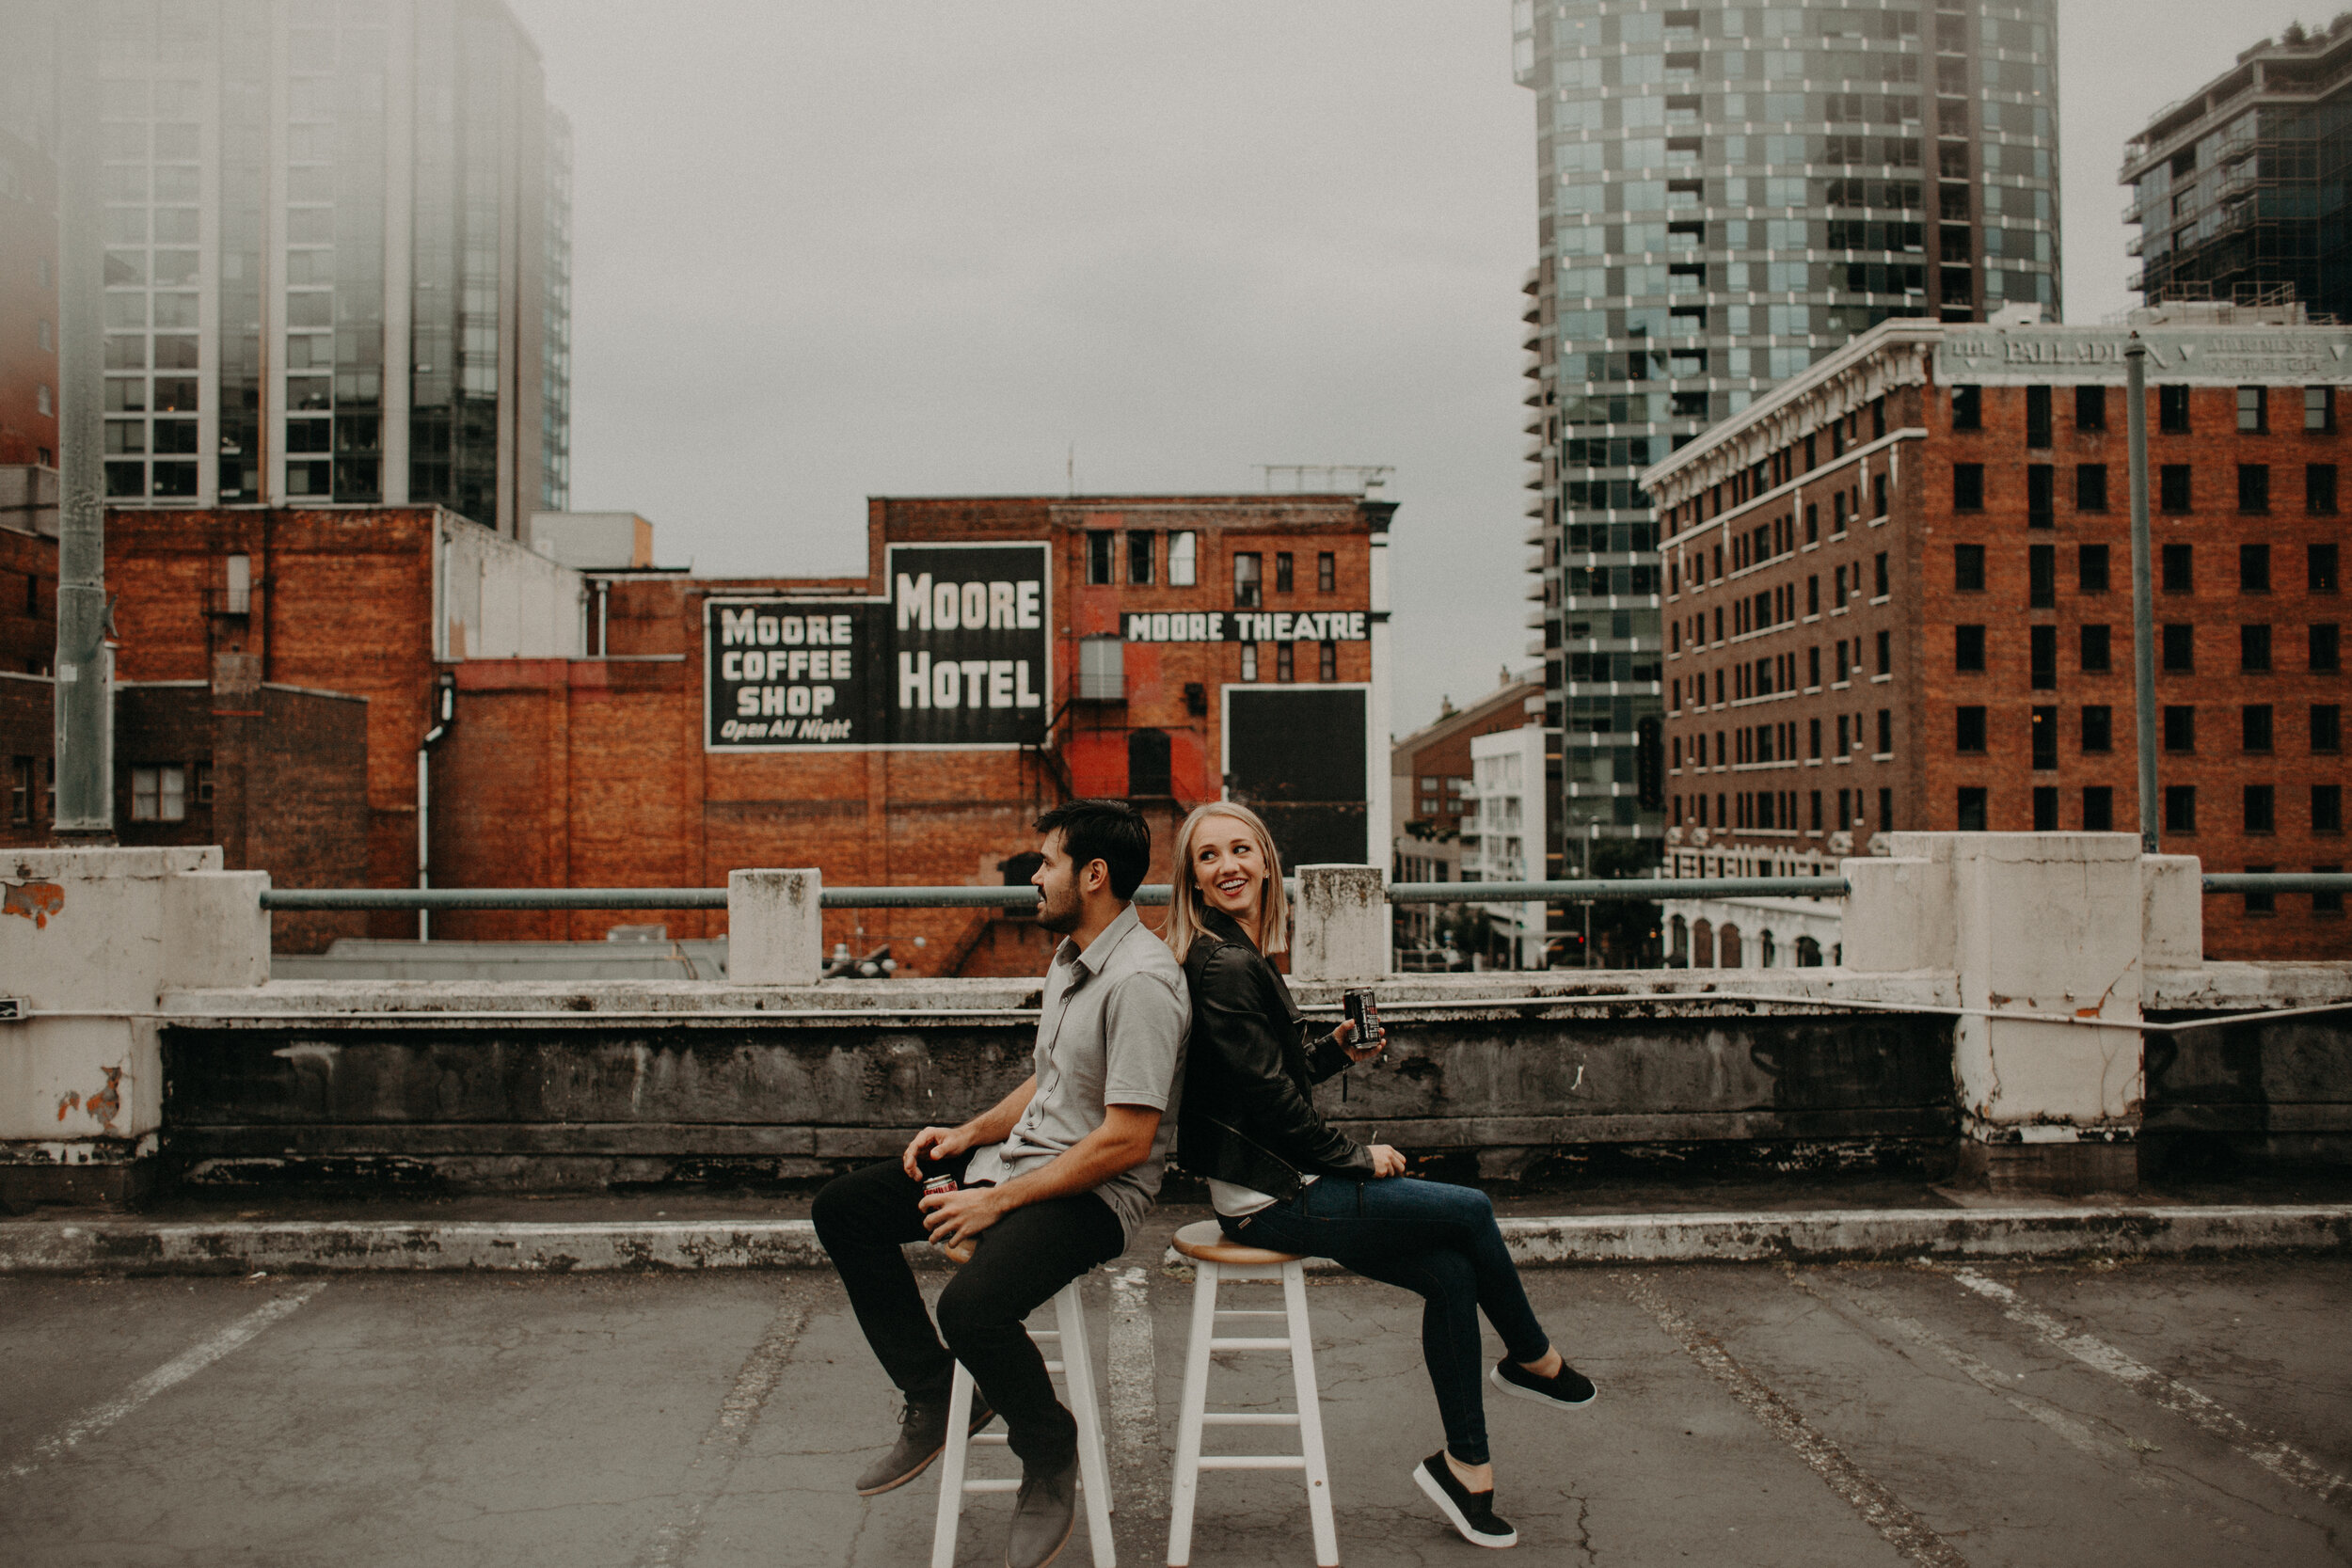 Moody Engagement Sessionin Downtown Seattle - Josh + Haley picked up and moved from Hawaii to themisty goodness of the PNW! To celebrate their big move weexplored the urban landscape of Downtown Seattle & crackedopen a couple of ciders from Schilling Cider - YUM.